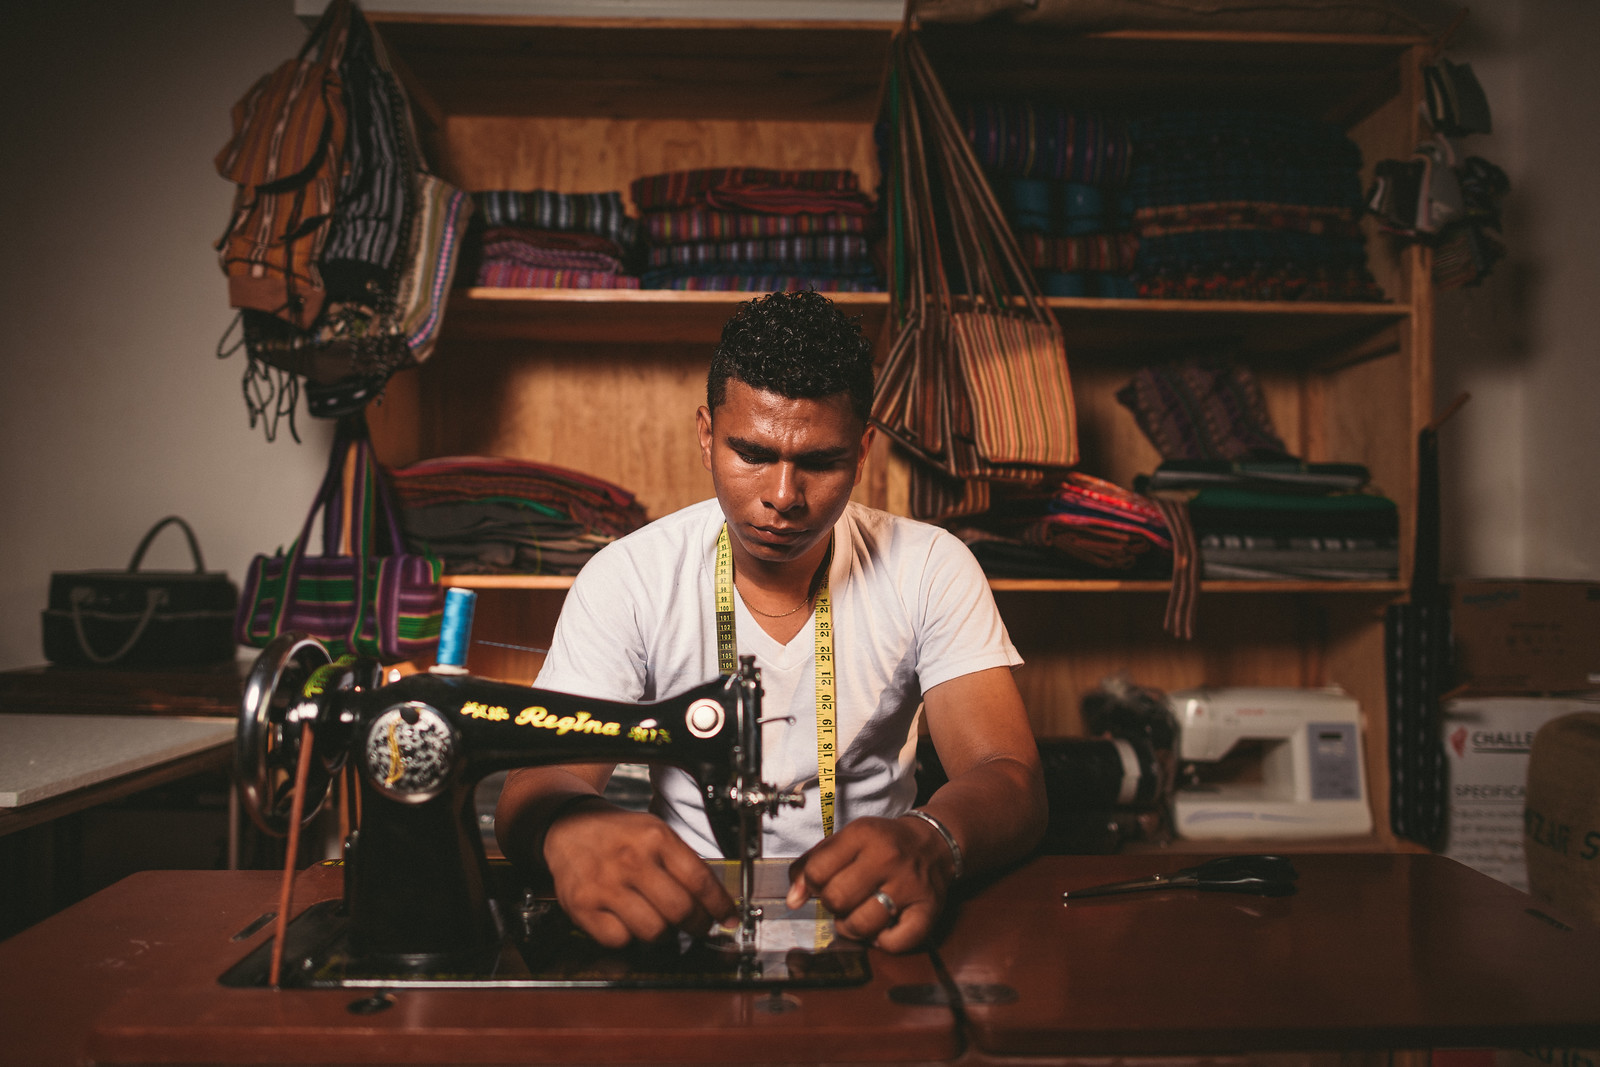 Deybin is an accomplished artisan with an eye for detail and beauty. His growing skills allow him to create new products for the international market.